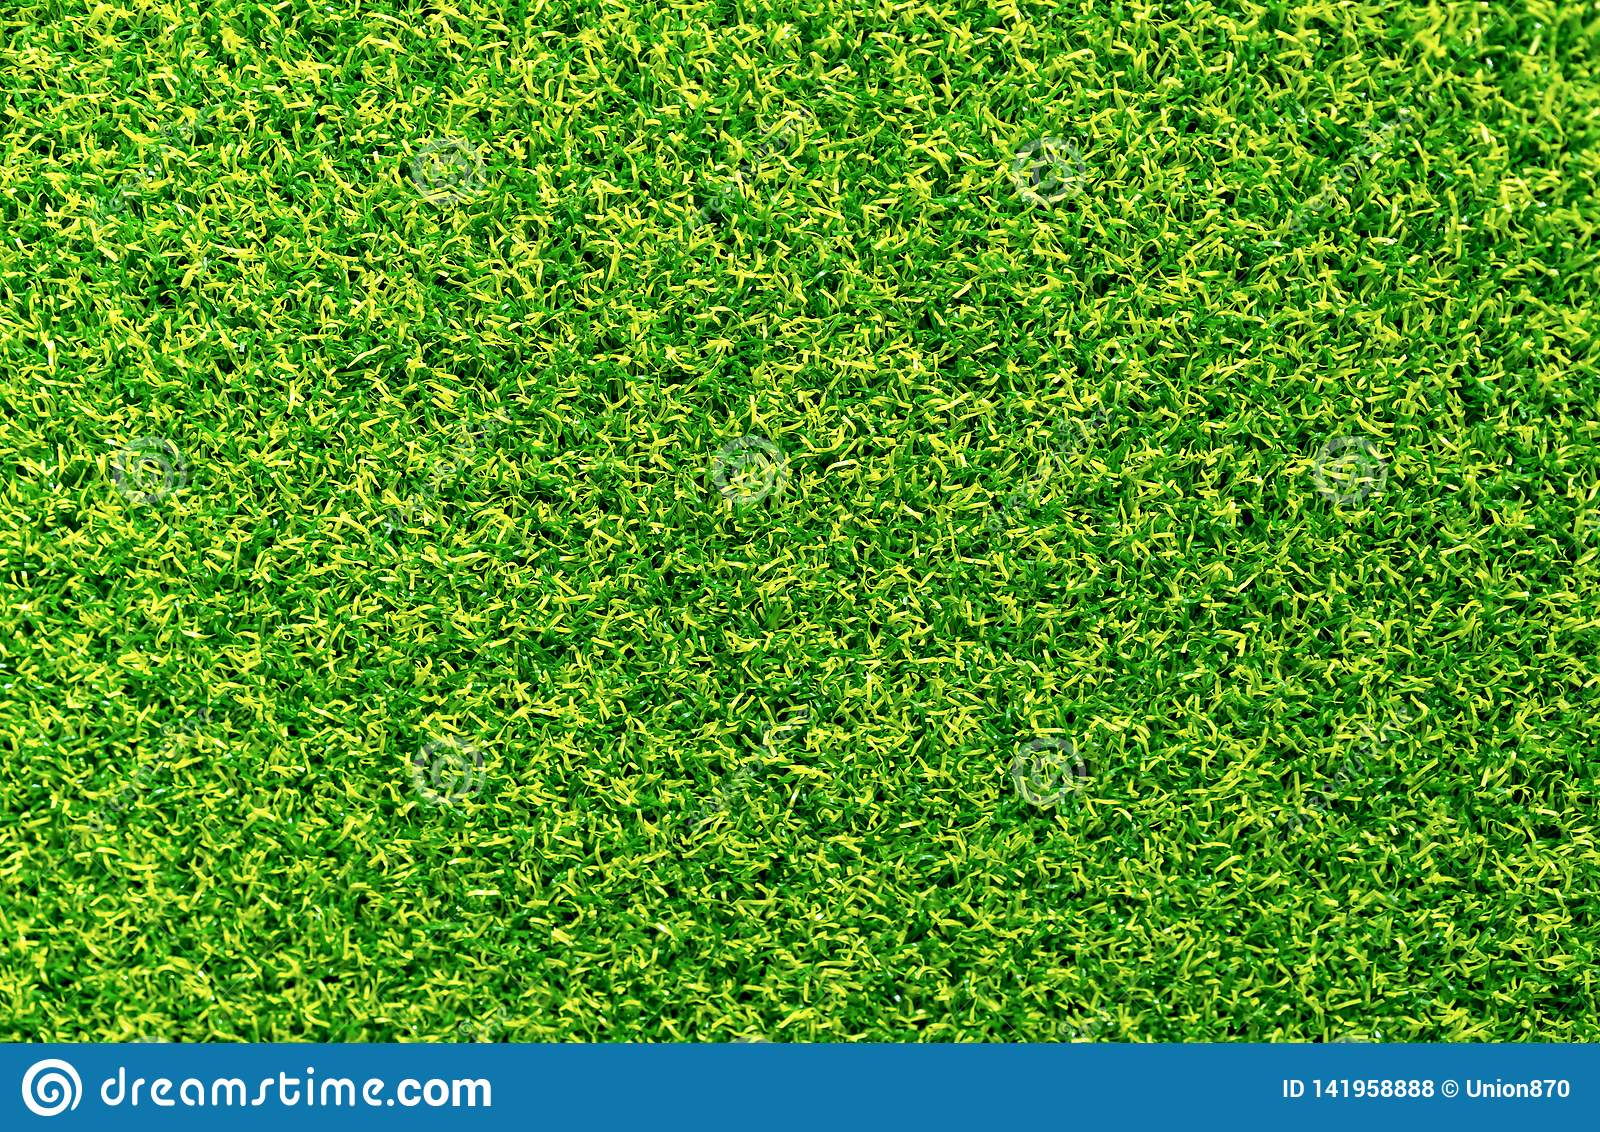 Background carpet with green and yellow soft nap